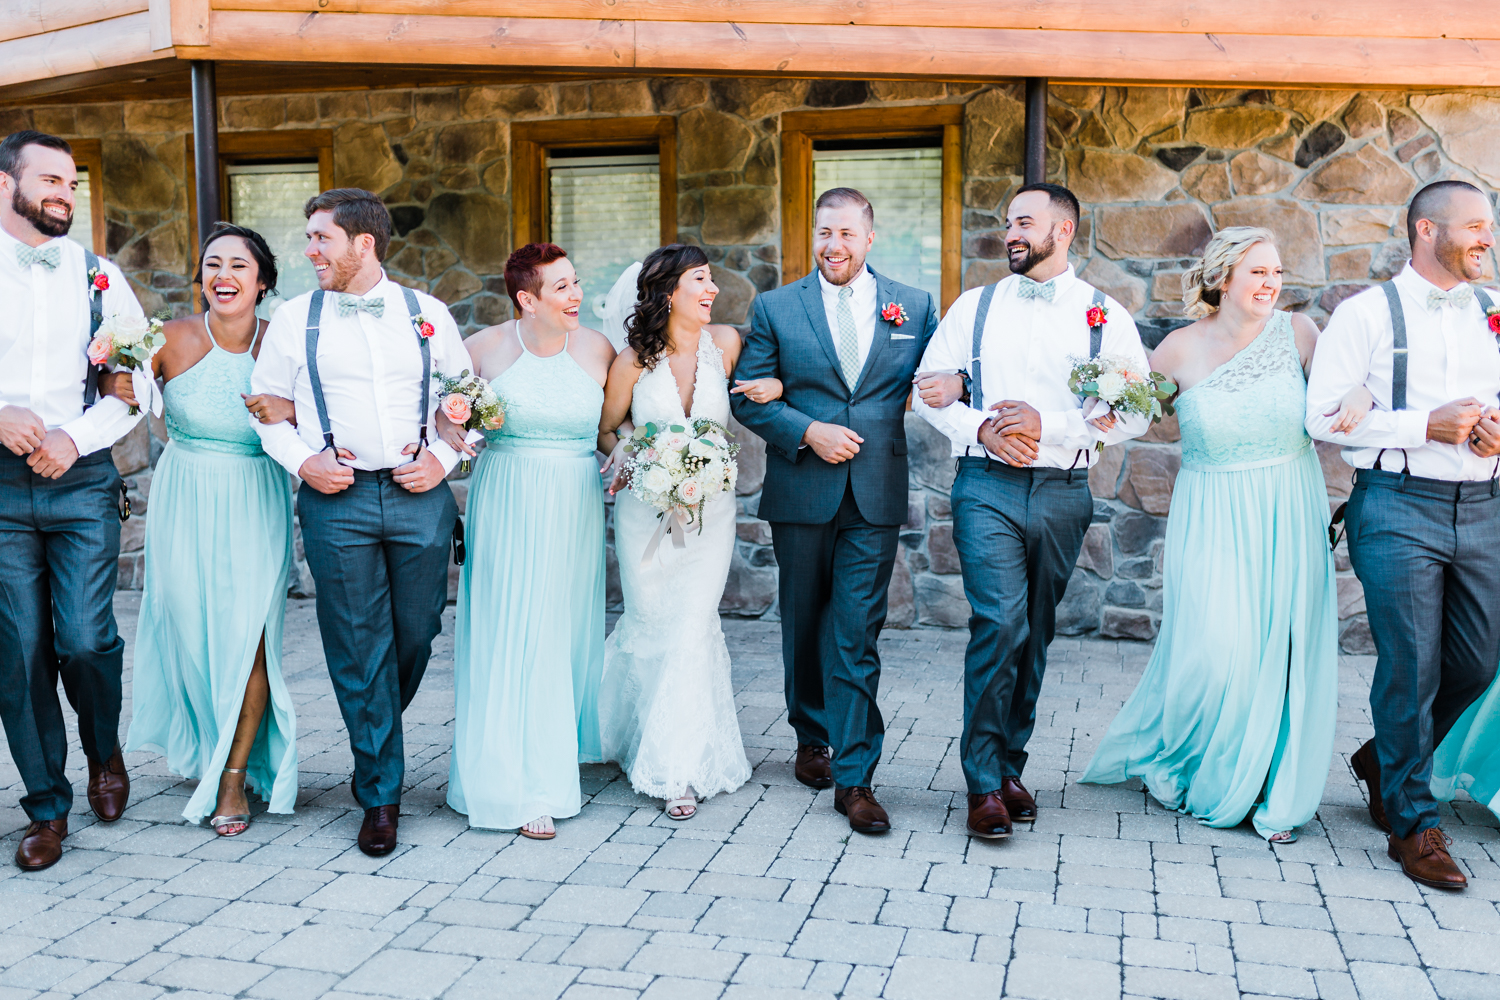 bridesmaids and groomsmen laughing with bride and groom during photos - maryland wedding photographer - best overall experience